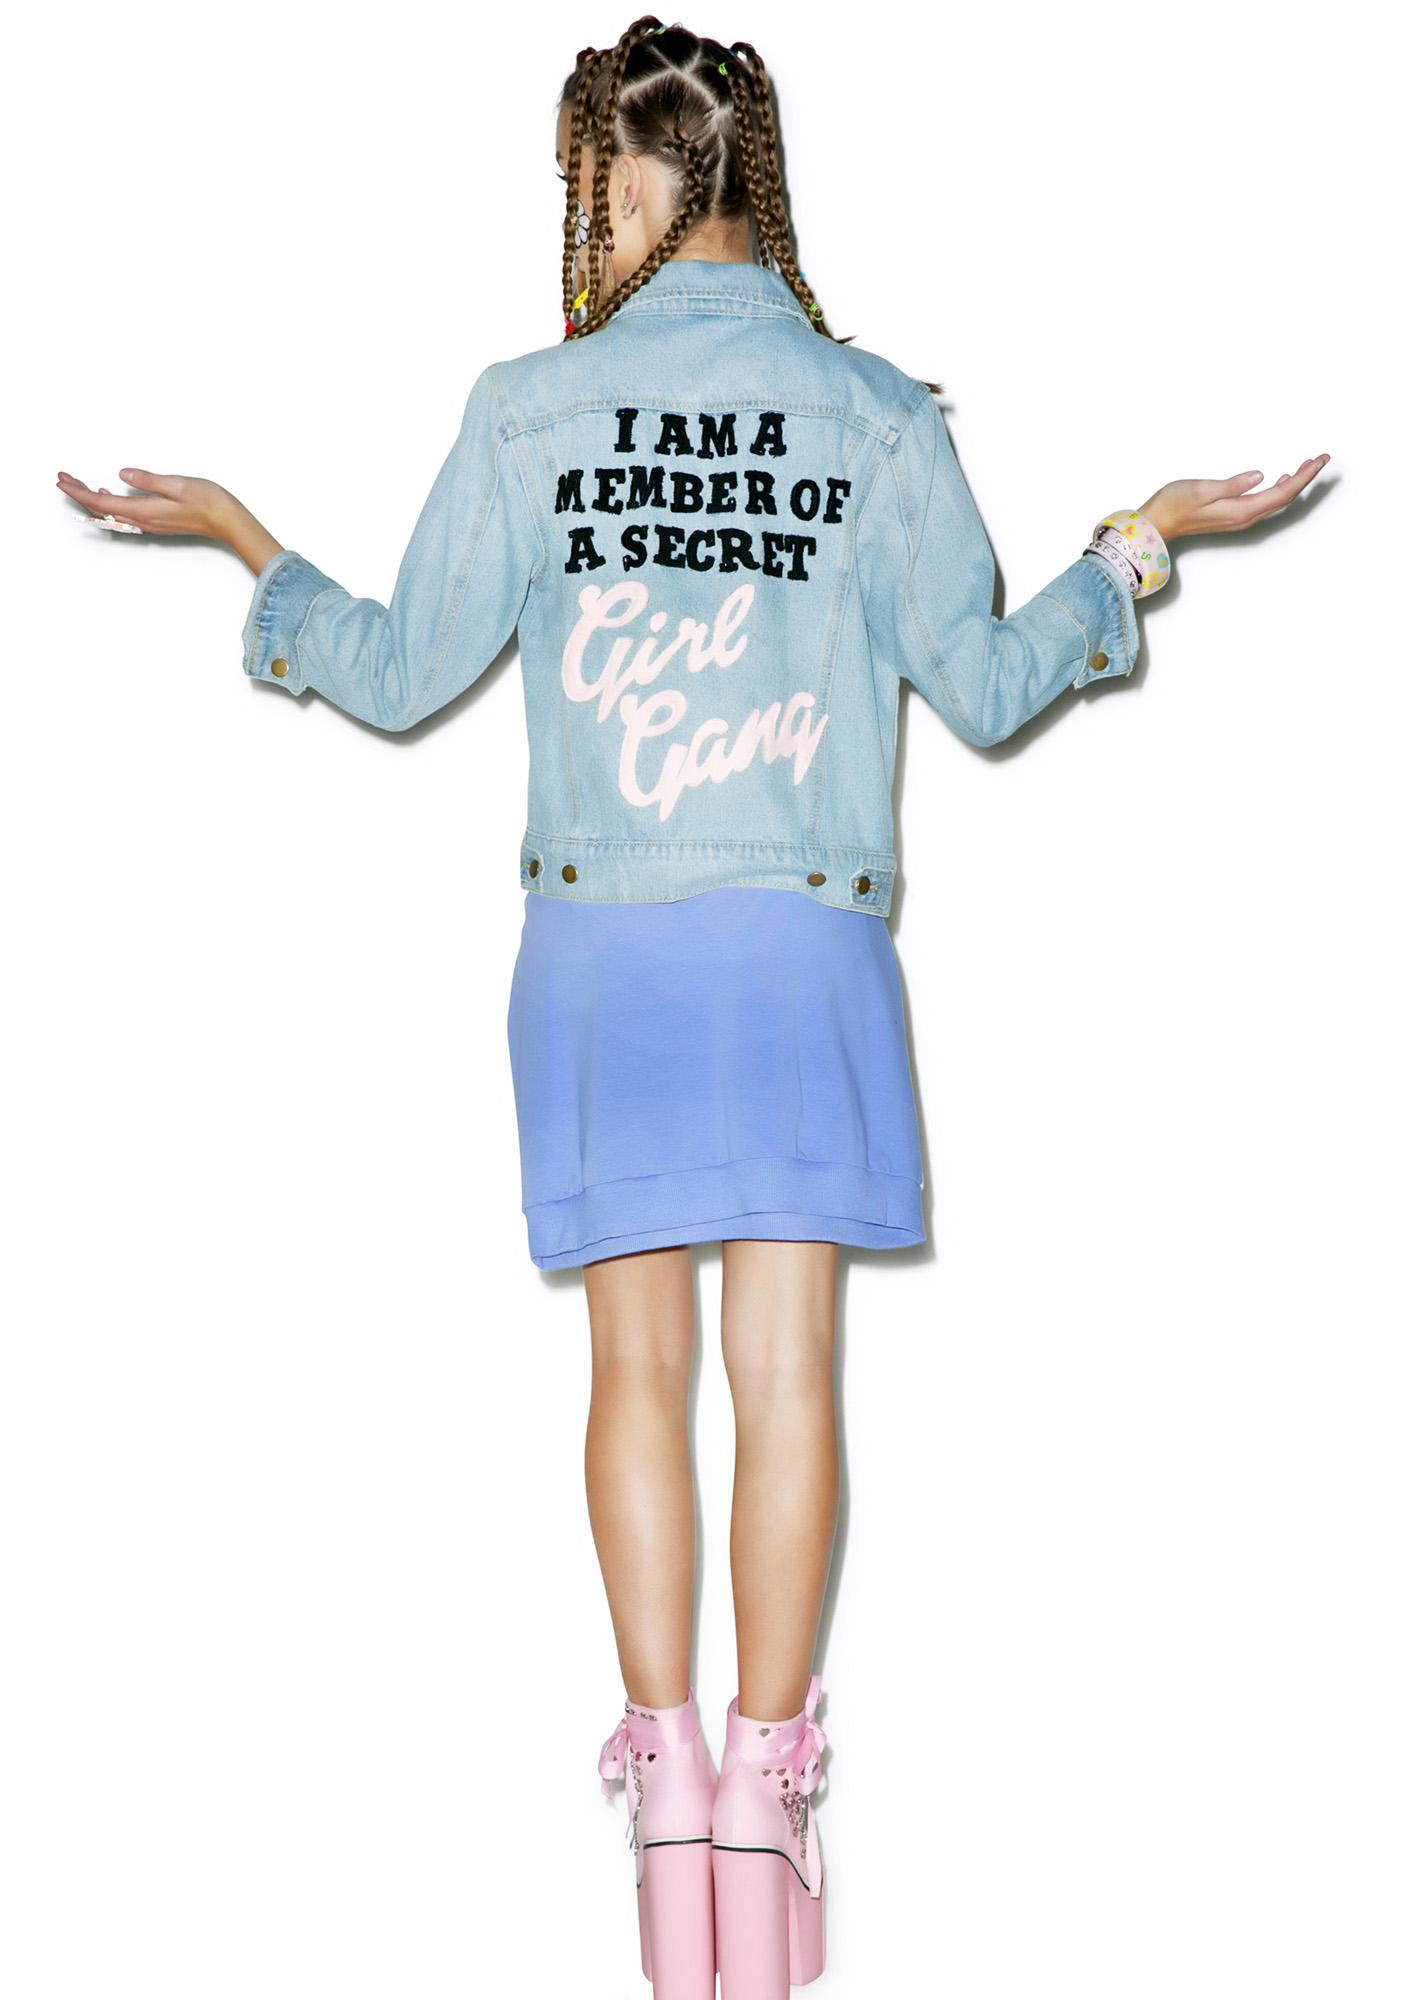 High Heels Suicide Girl Gang Denim Jacket